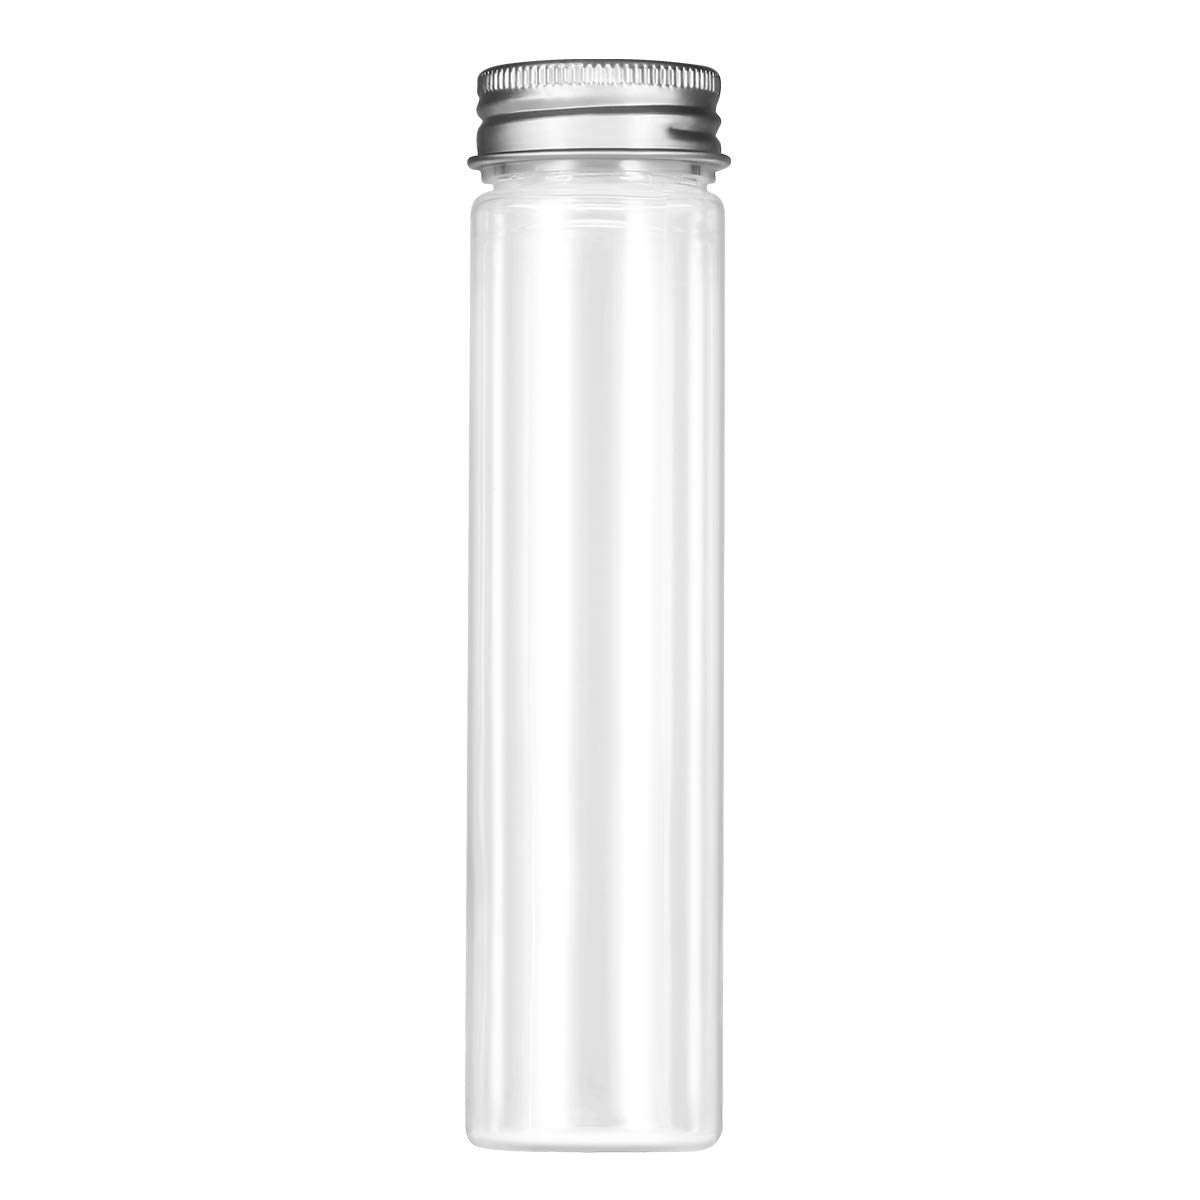 UKCOCO 15pcs Flat-bottomed Plastic Clear Test Tubes with Screw Caps Candy Cosmetic Travel Lotion Containers 110ml